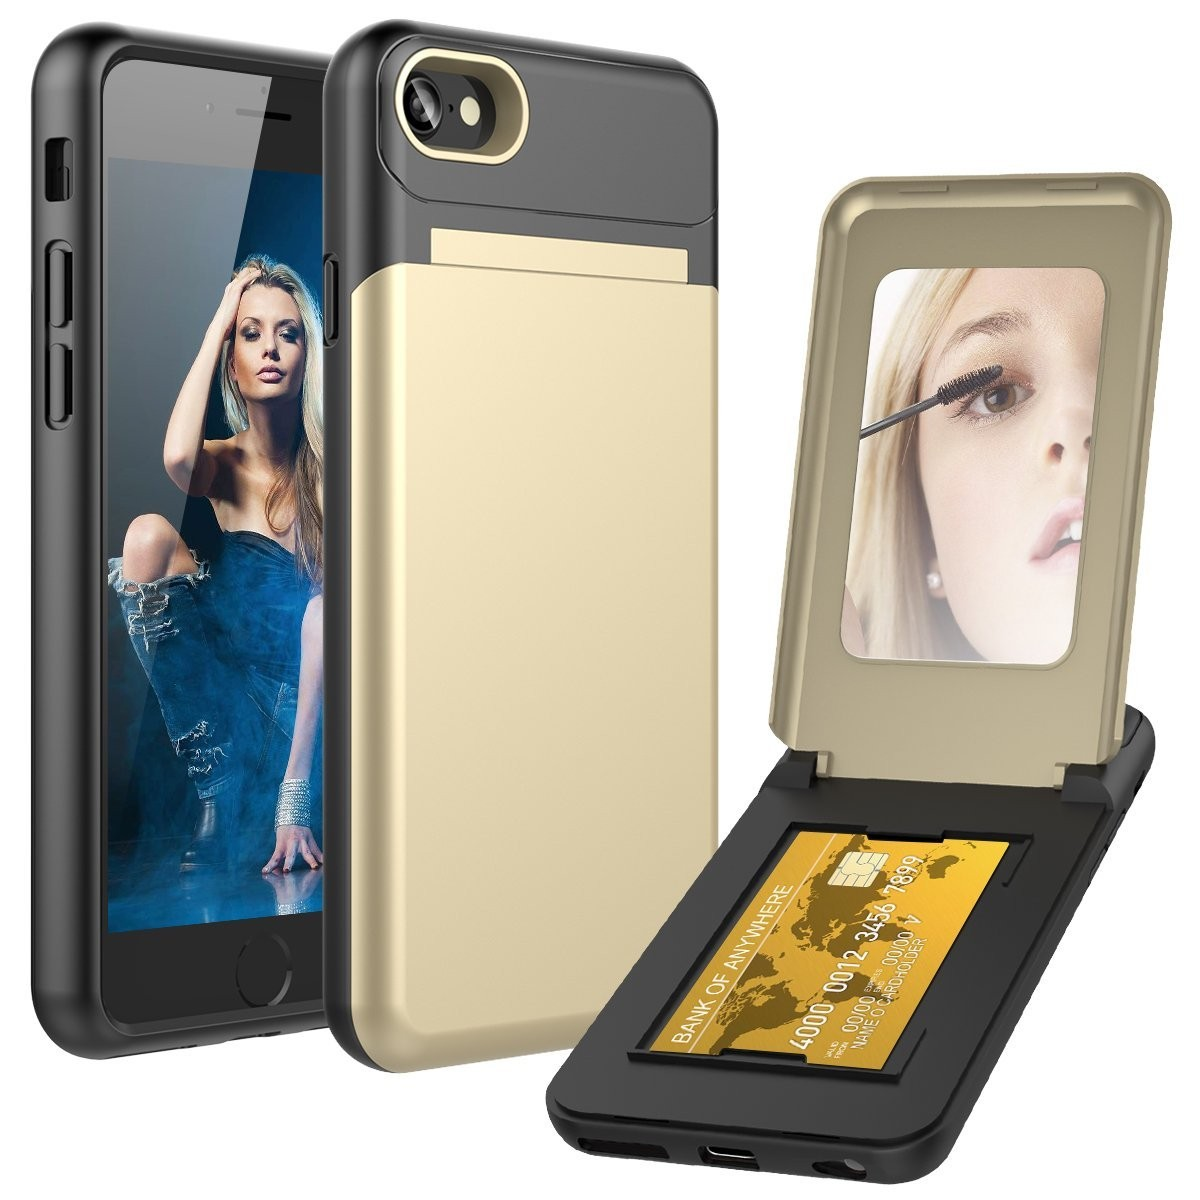 Apple iPhone 8 -  Hard Phone Case with Hidden Mirror and Card Holder Compartment, Gold/Black